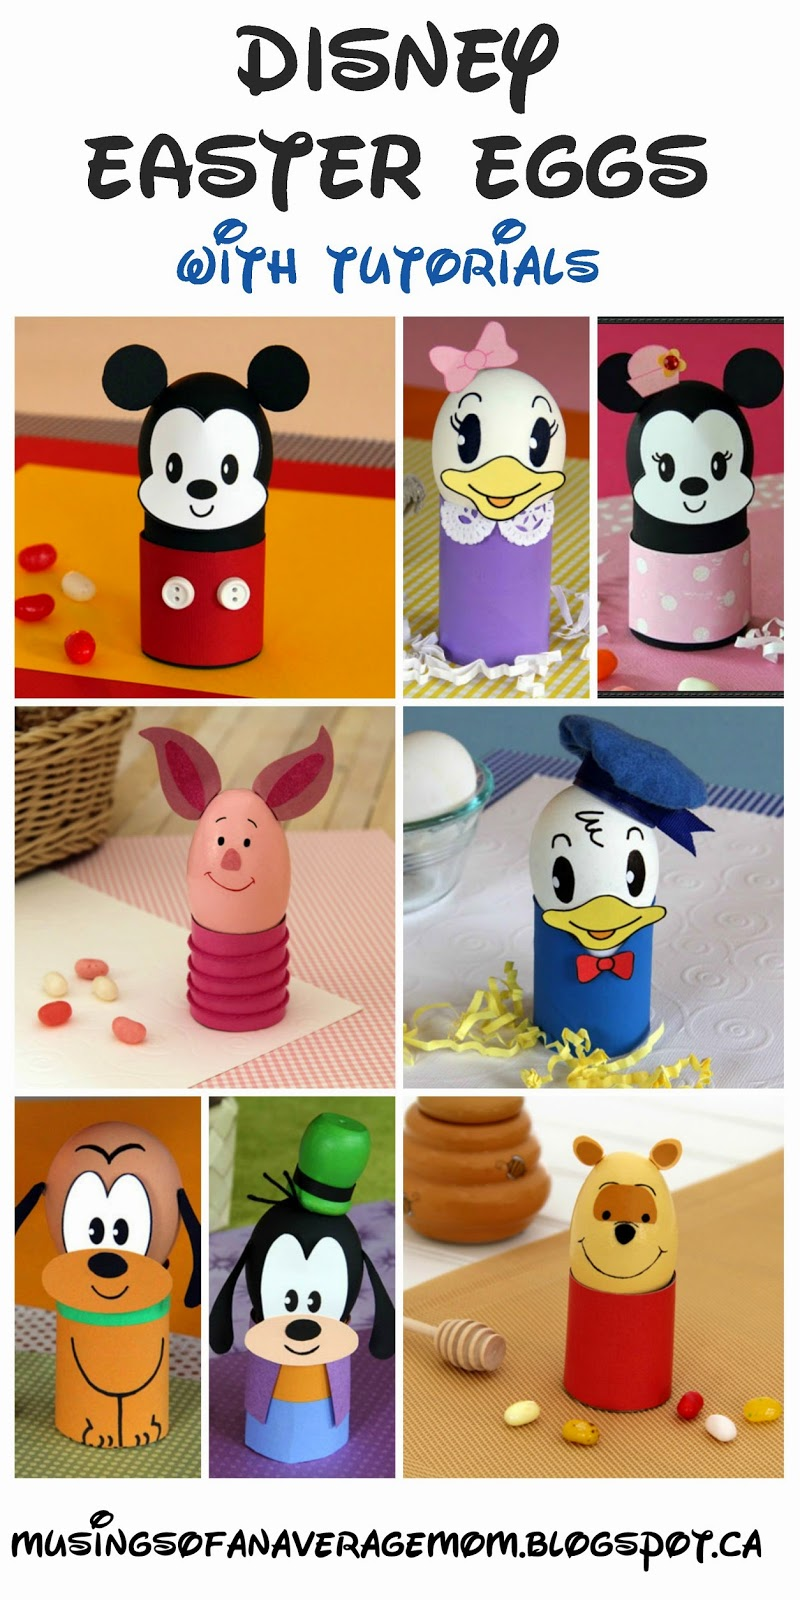 Disney Easter Eggs